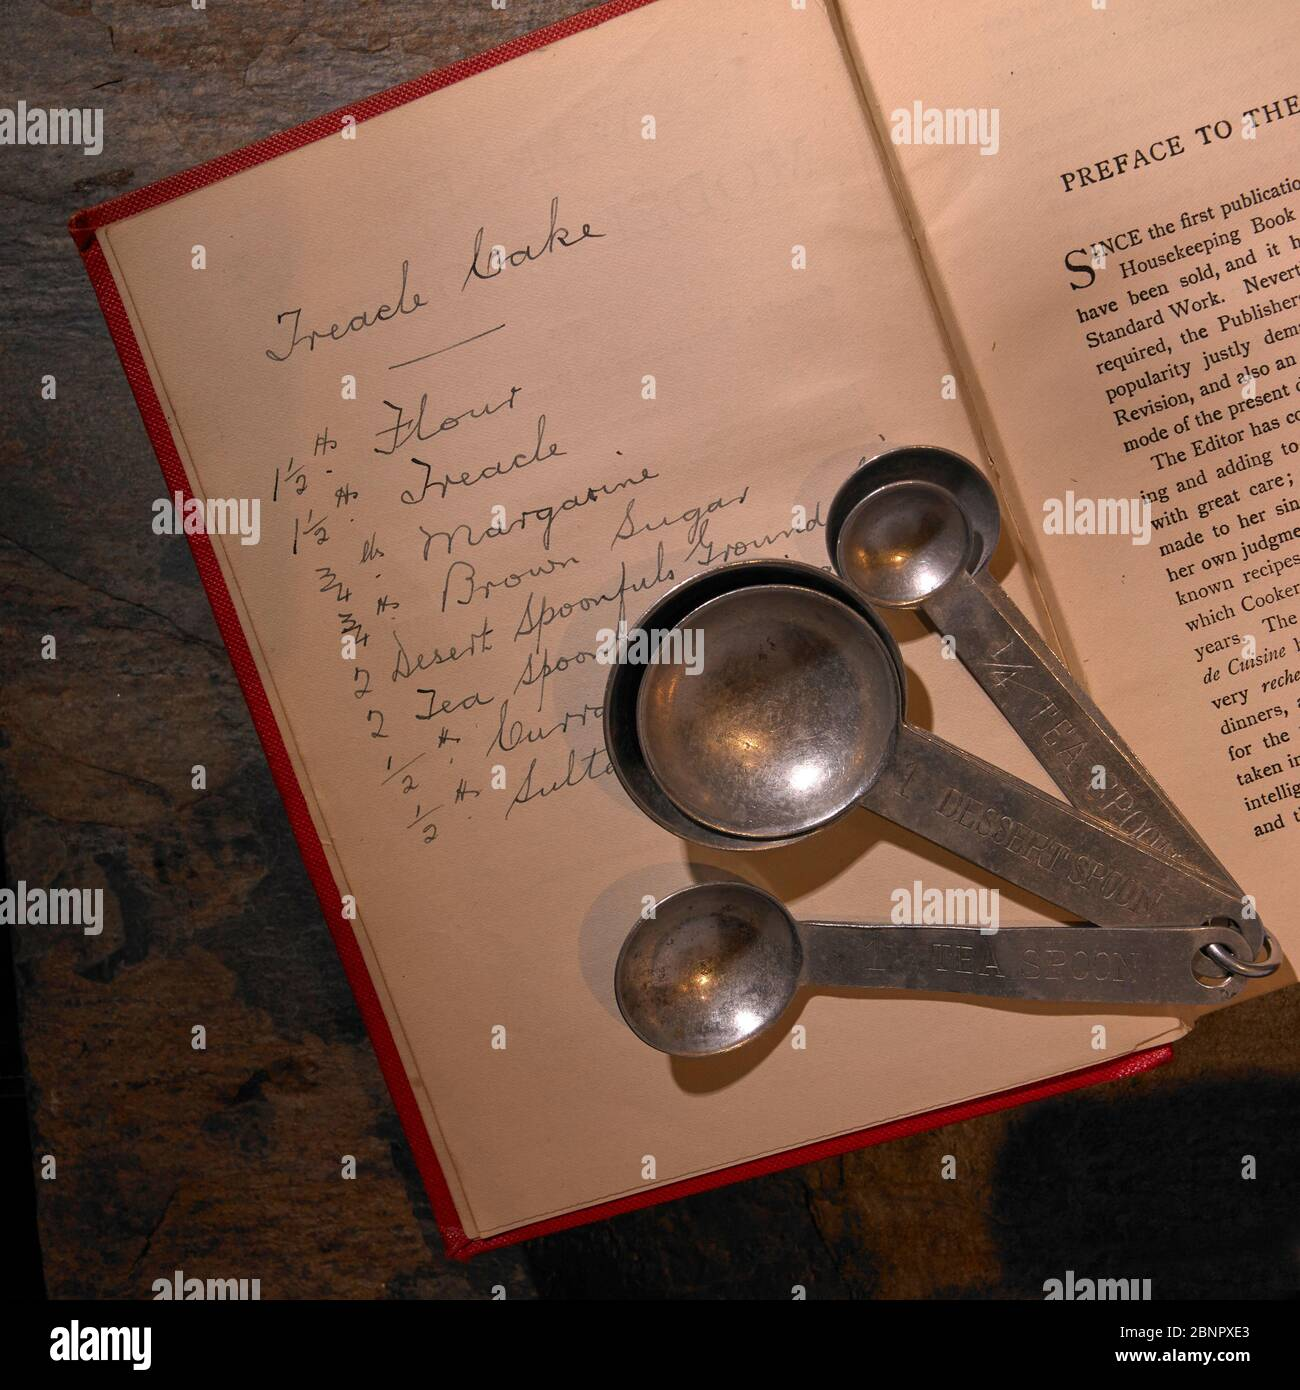 imperial-measure-spoons-lying-on-front-page-of-19th-early-20th-century-recipe-book-with-handwritten-treacle-cake-recipe-complete-with-measures-2BNPXE3.jpg